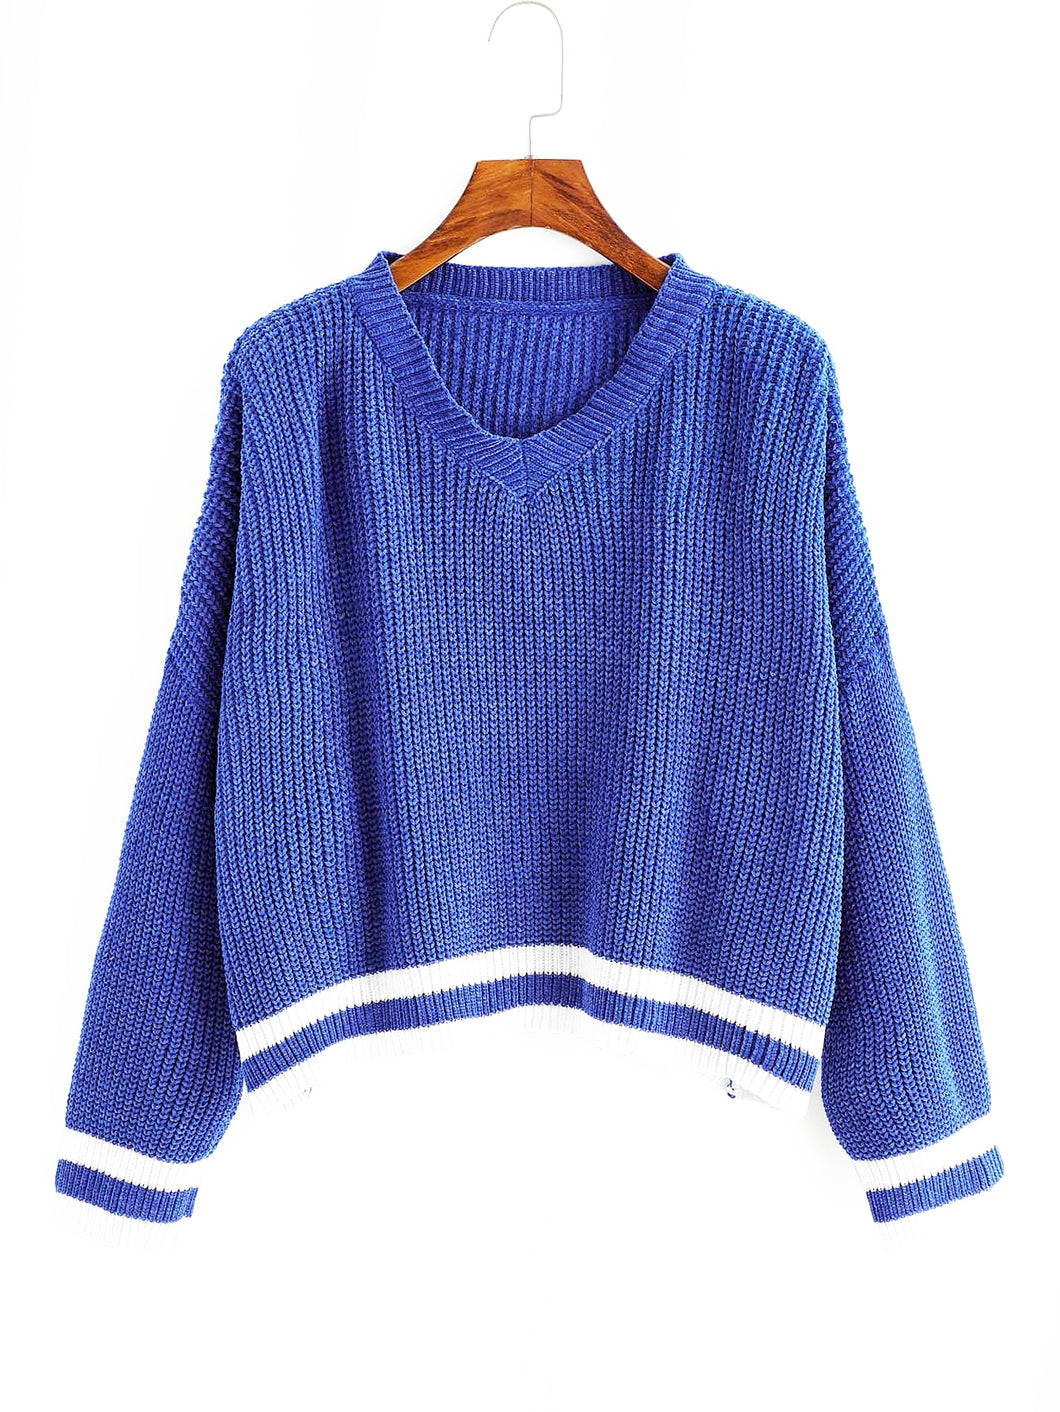 Kinley Cropped Pullover Sweater - Didi Royale